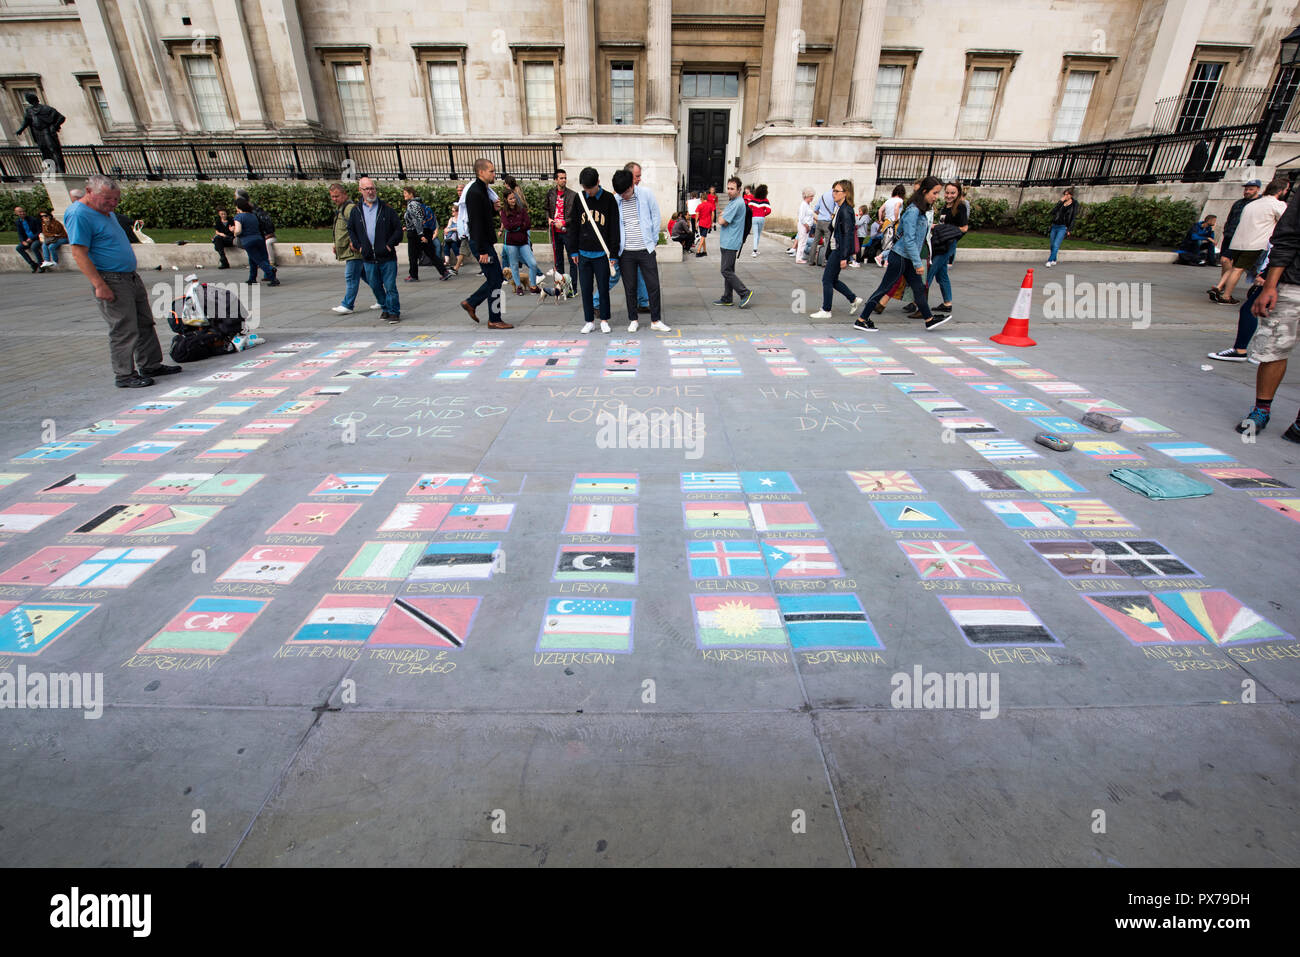 Country's flags drawn on the asphalt in London, UK - Stock Image